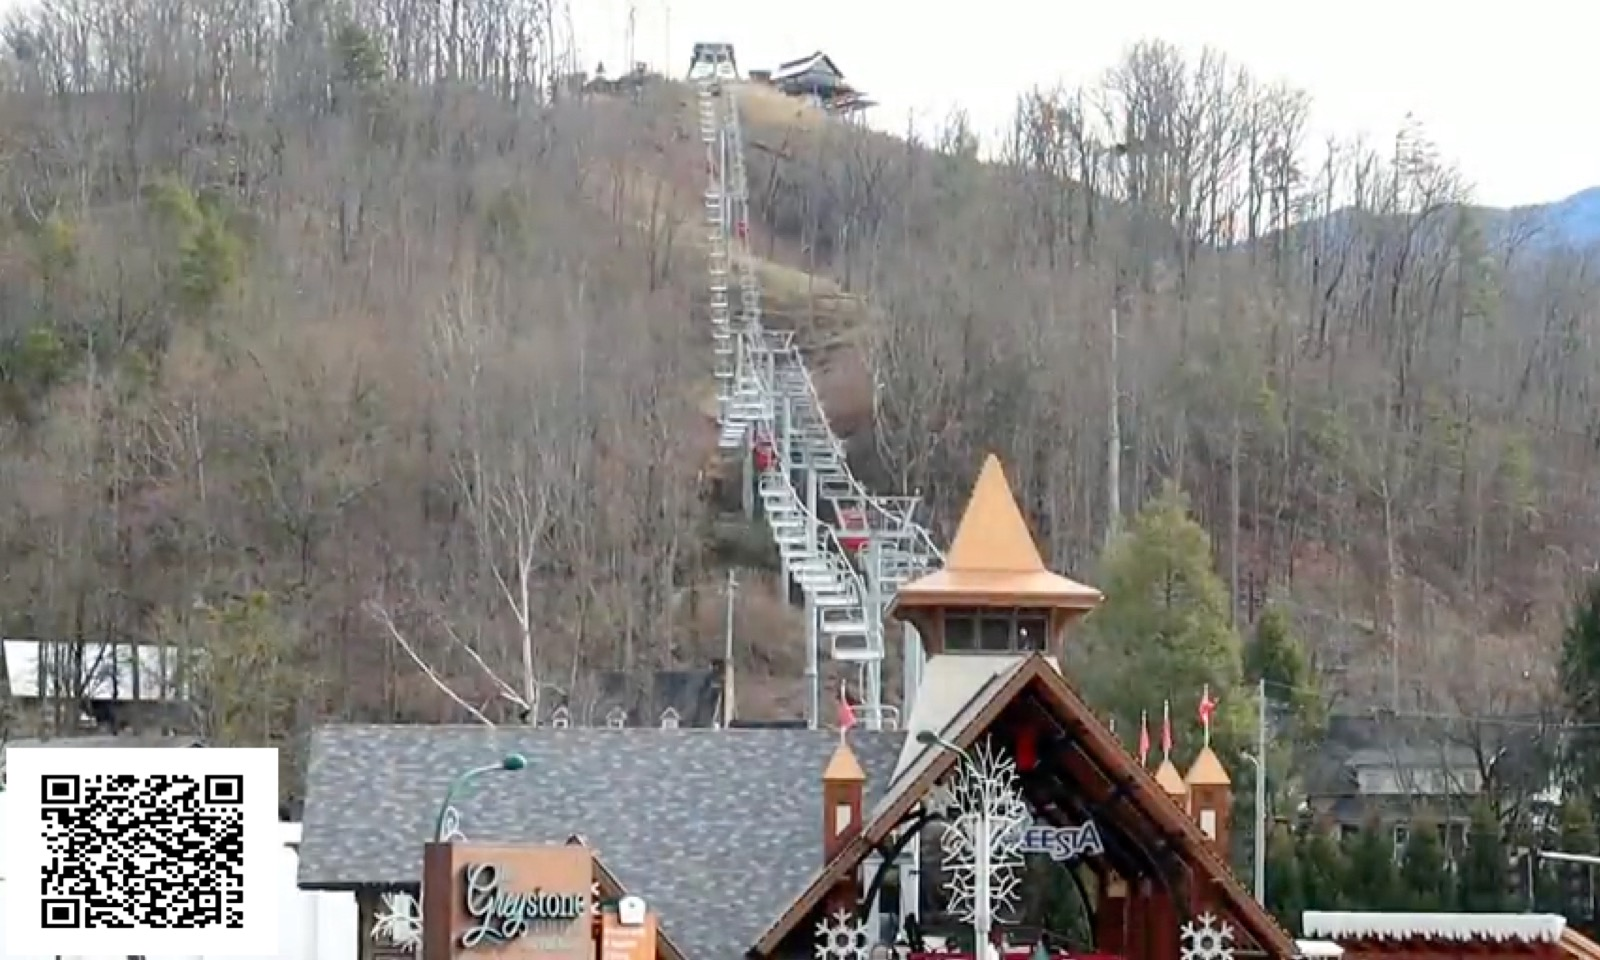 Gatlinburg Tourist Attraction